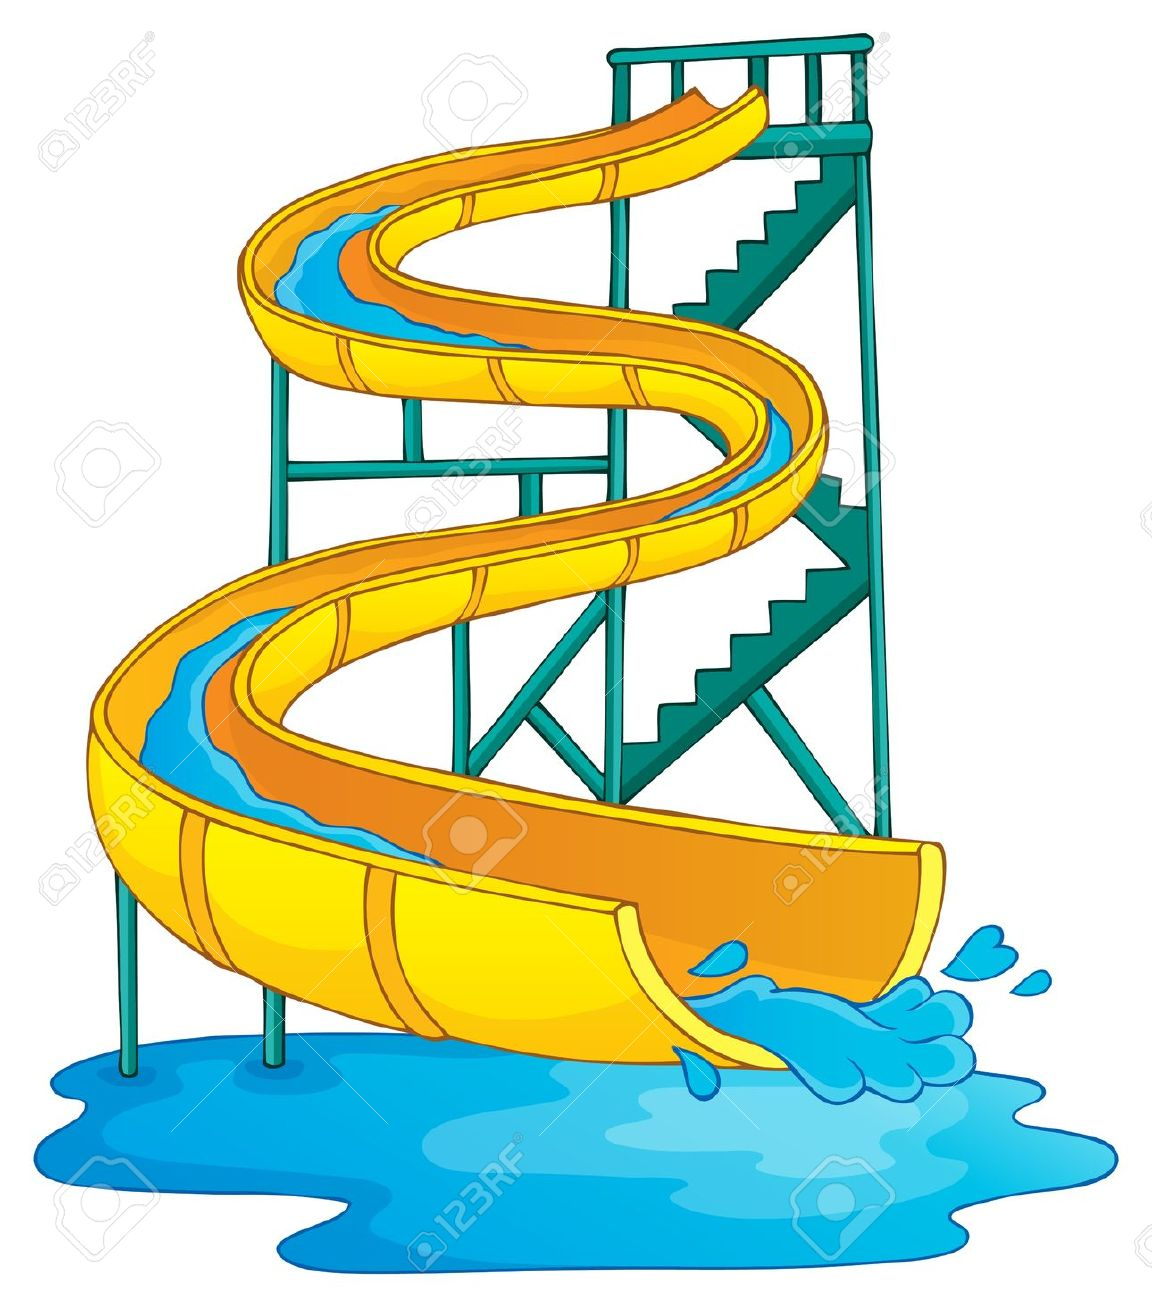 Water Ride Clipart.